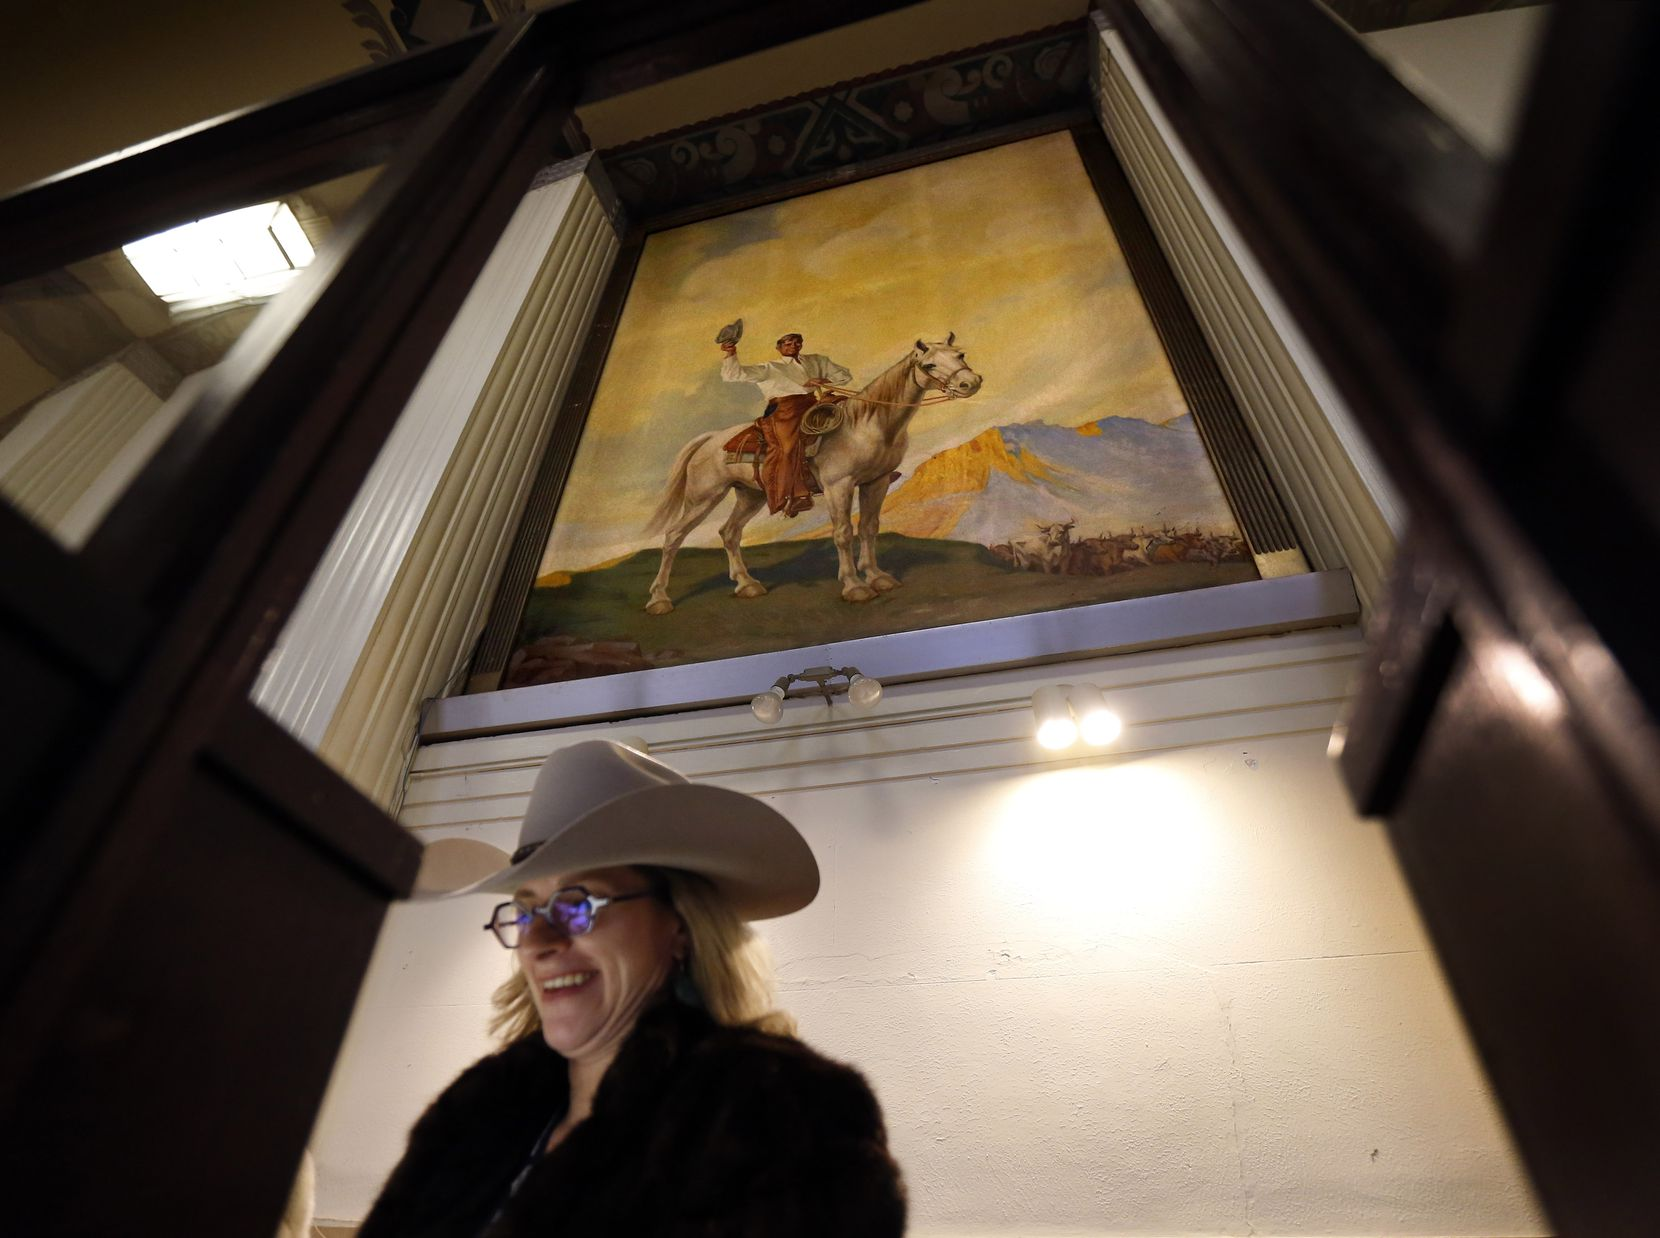 Junior League of Fort Worth member Claudia Thompson works in the old ticket booth below a 12x16 foot painting of Will Rogers on his horse, 'Soapsuds' in the north entryway of Will Rogers Memorial Coliseum, Wednesday, January 30, 2019 at the Fort Worth Stock Show and Rodeo in Fort Worth.